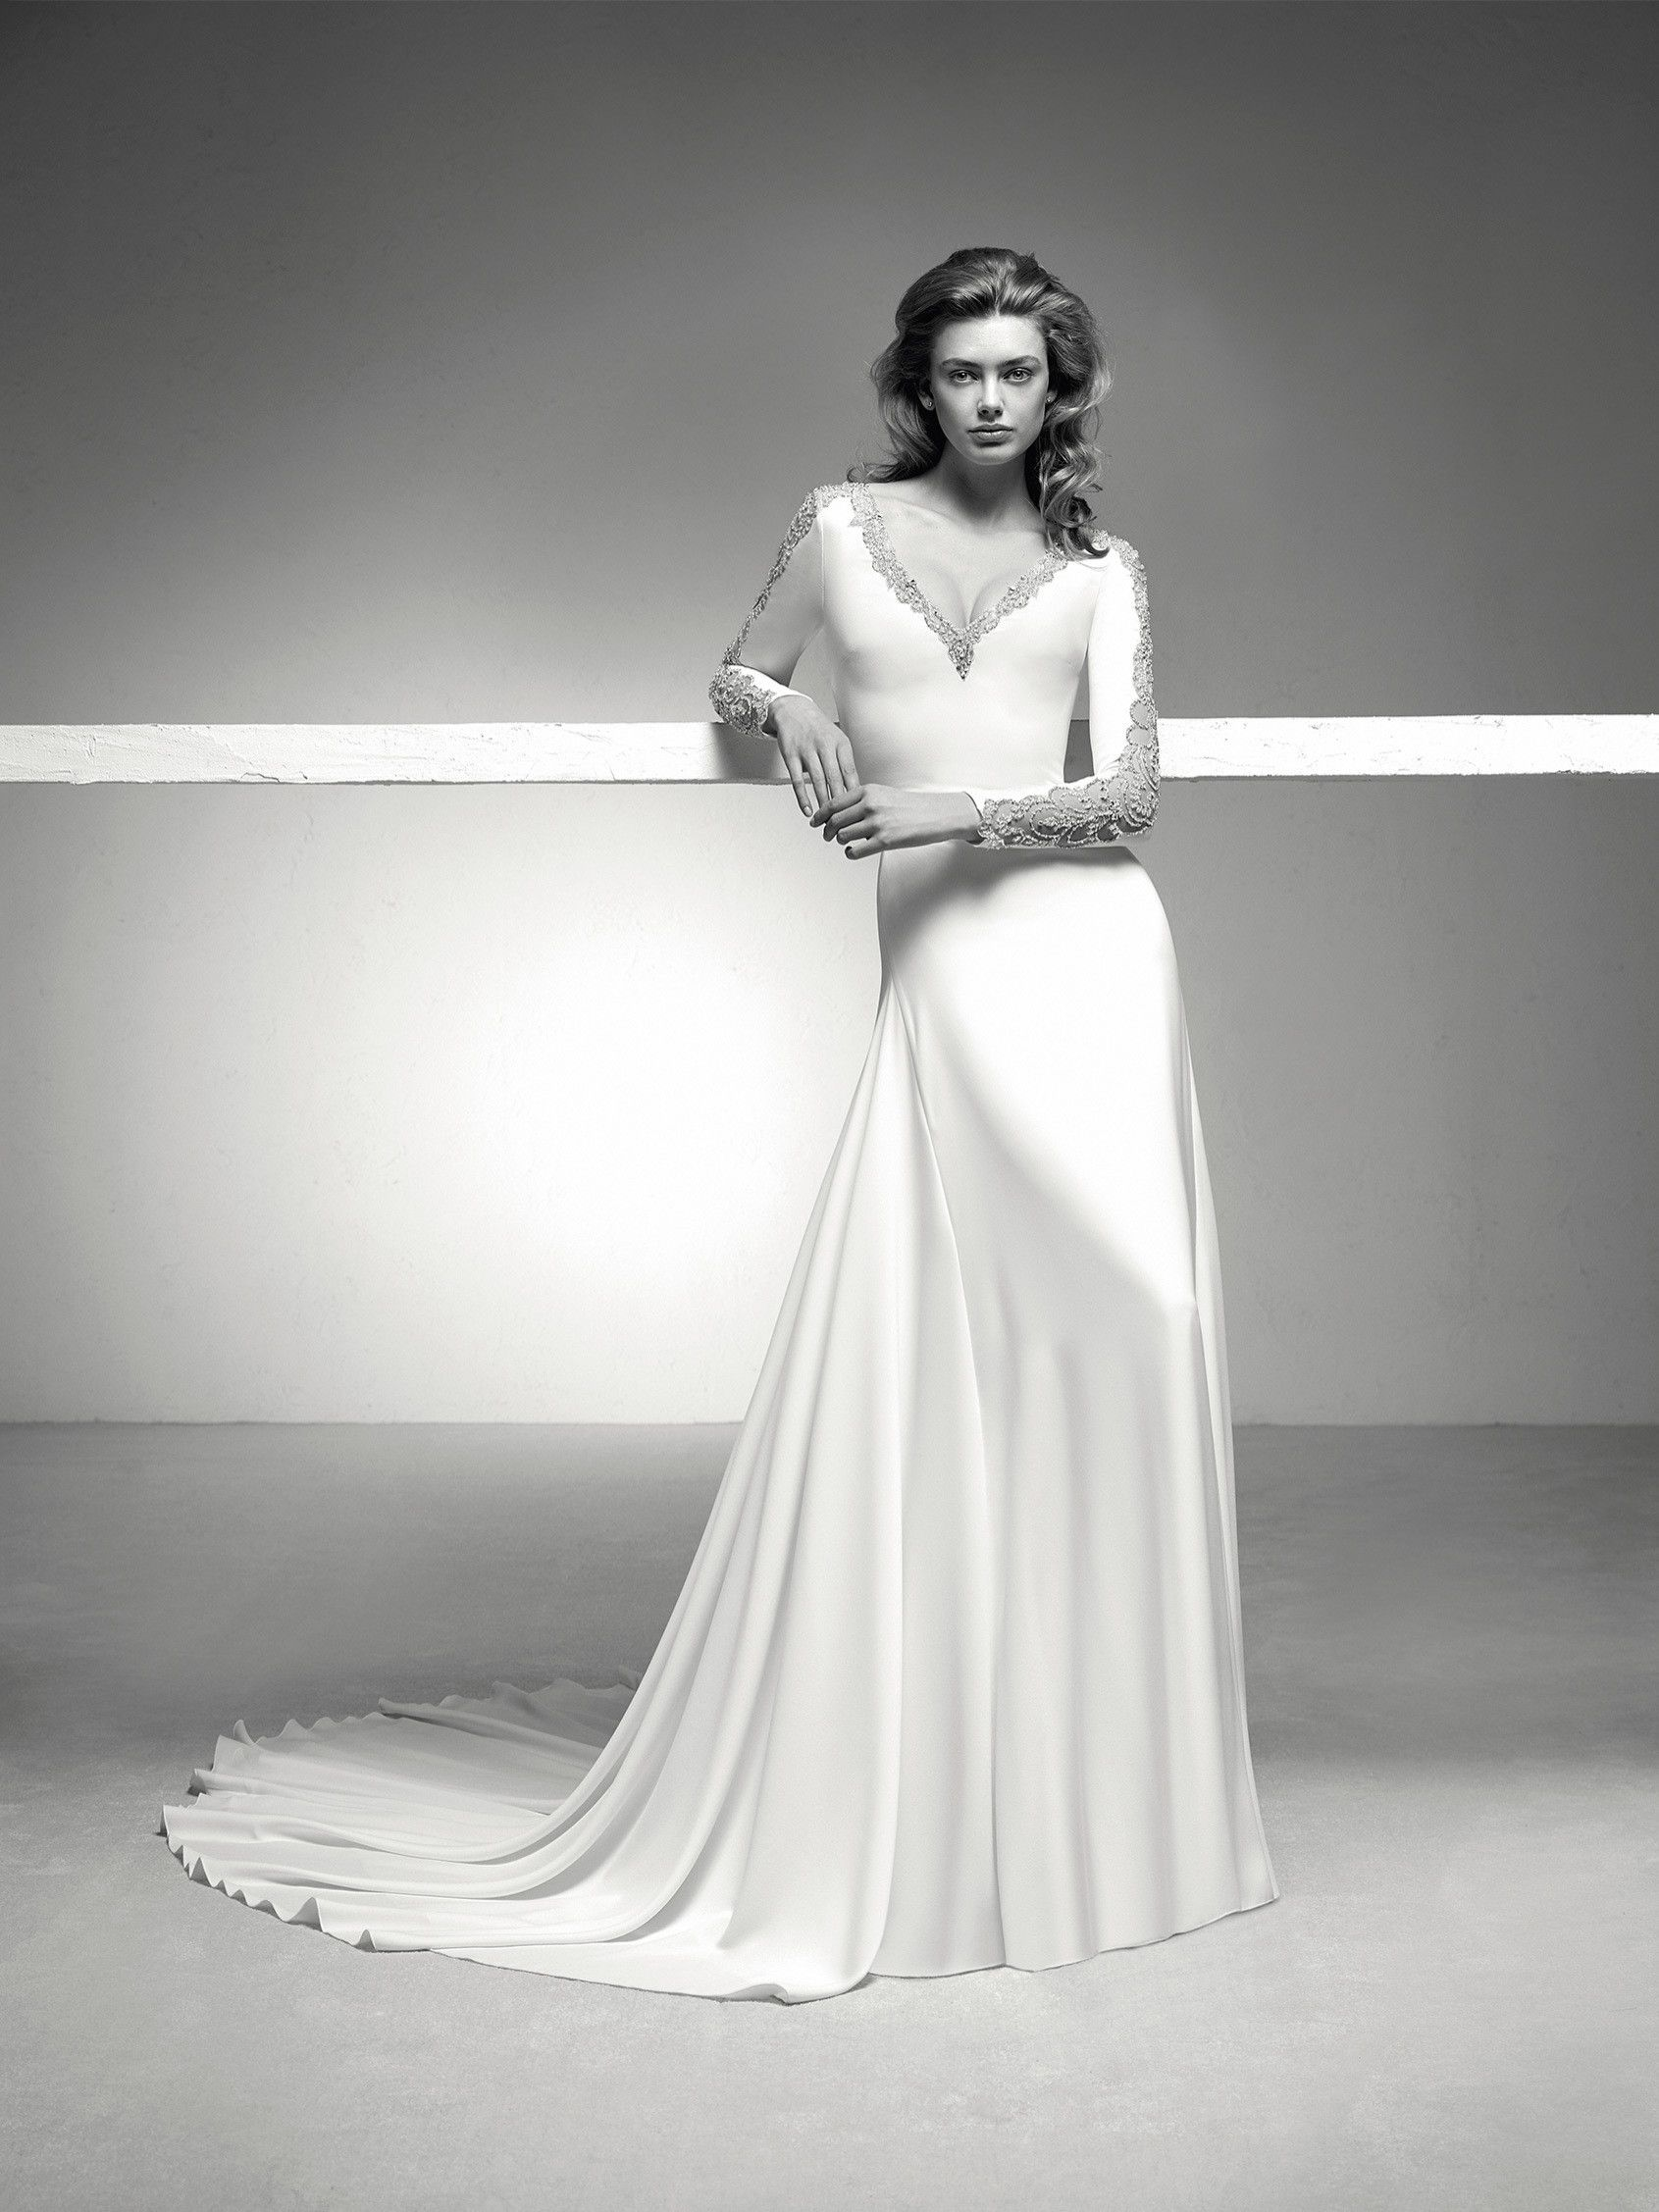 Icaria fabulous wedding dress with a flared skirt in crepe with an